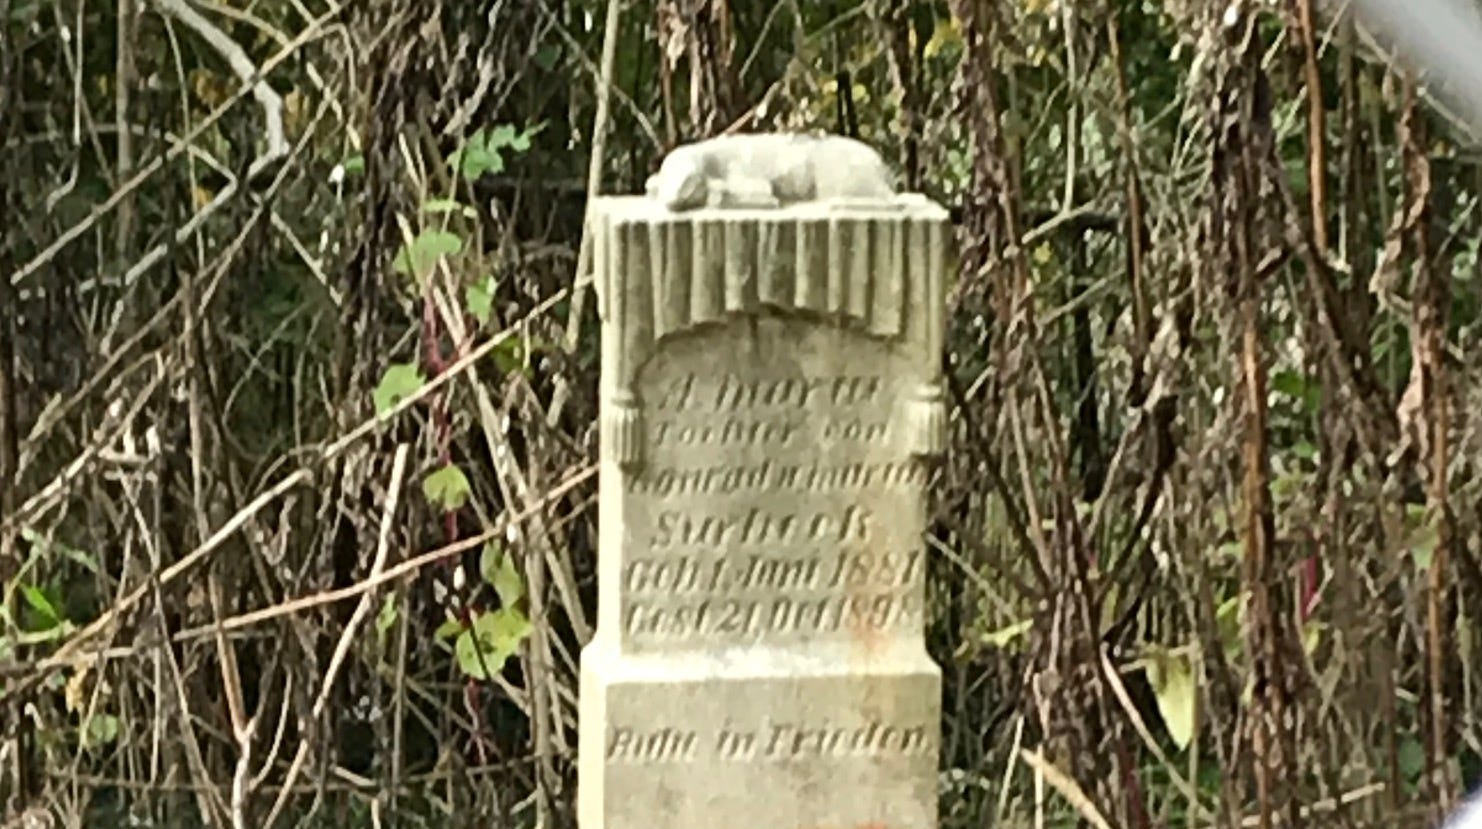 Mary Surbeck's grave, engraved in German, stands alone in a small cemetery near the Vectren A.B. Brown plant in Marrs Township.